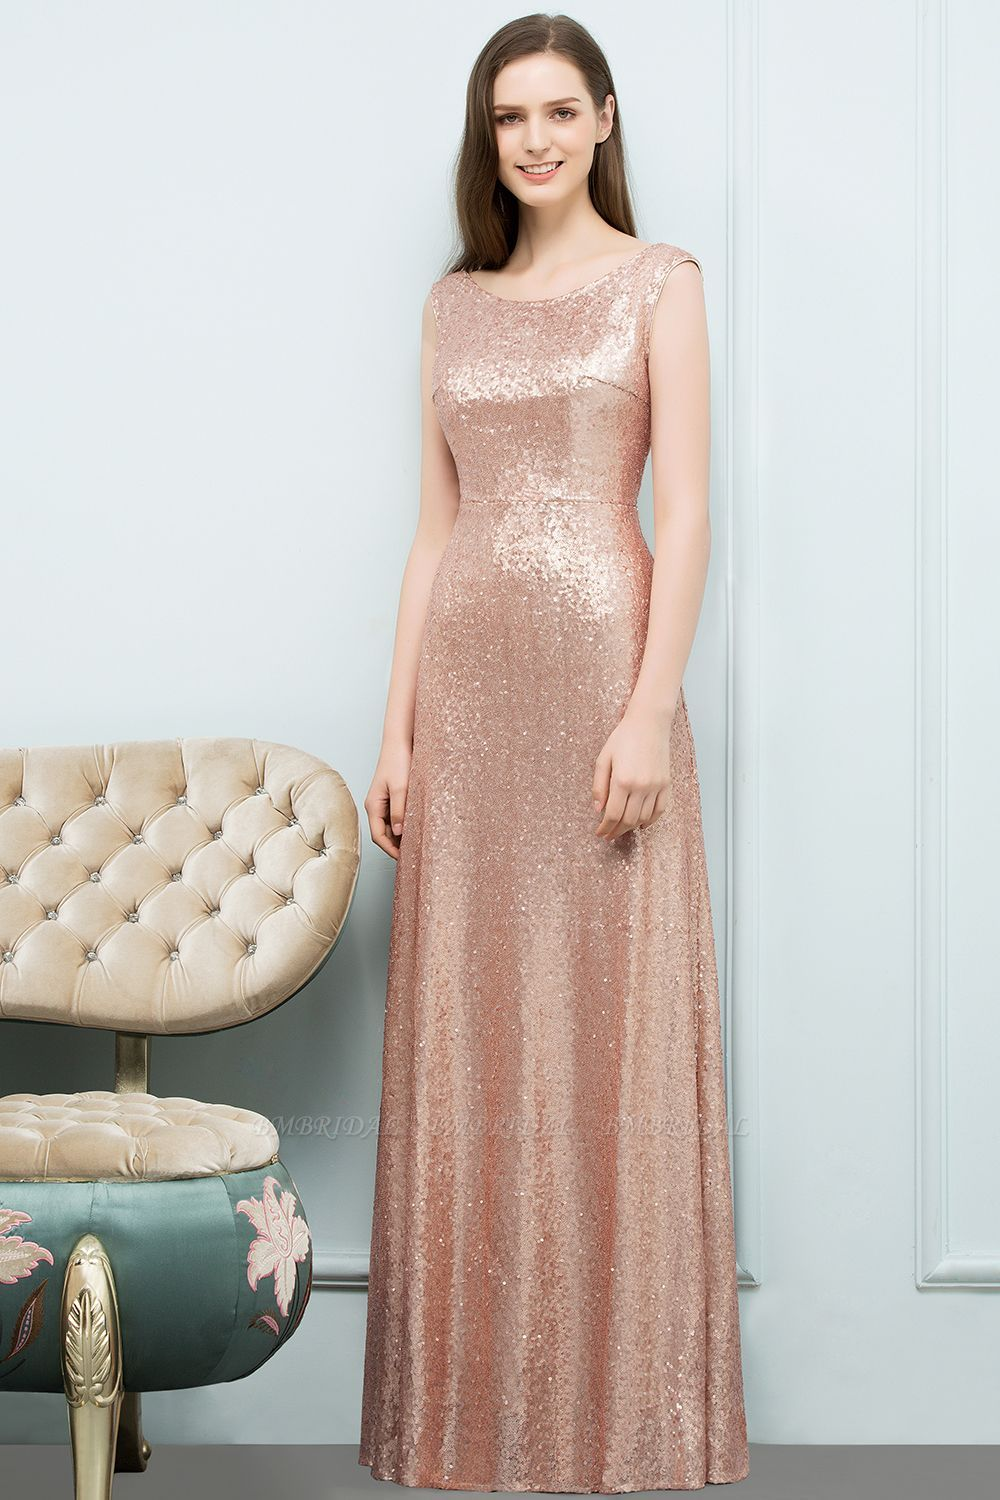 Bmbridal Shiny Sequined Scoop Sleeveless Champagne Bridesmaid Dress Online Cheap Chiffon Bridesmaid Dresses Long Sleeve Bridesmaid Dress Burgundy Bridesmaid Dresses [ 1500 x 1000 Pixel ]